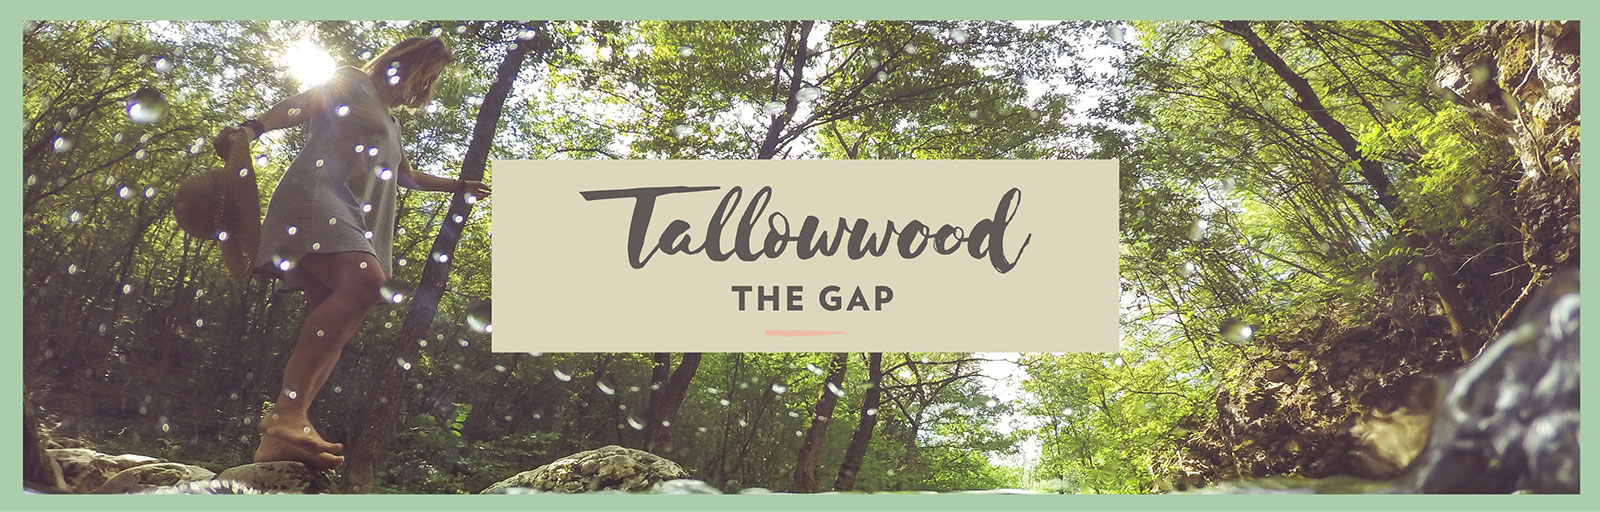 Tallowwood, The Gap